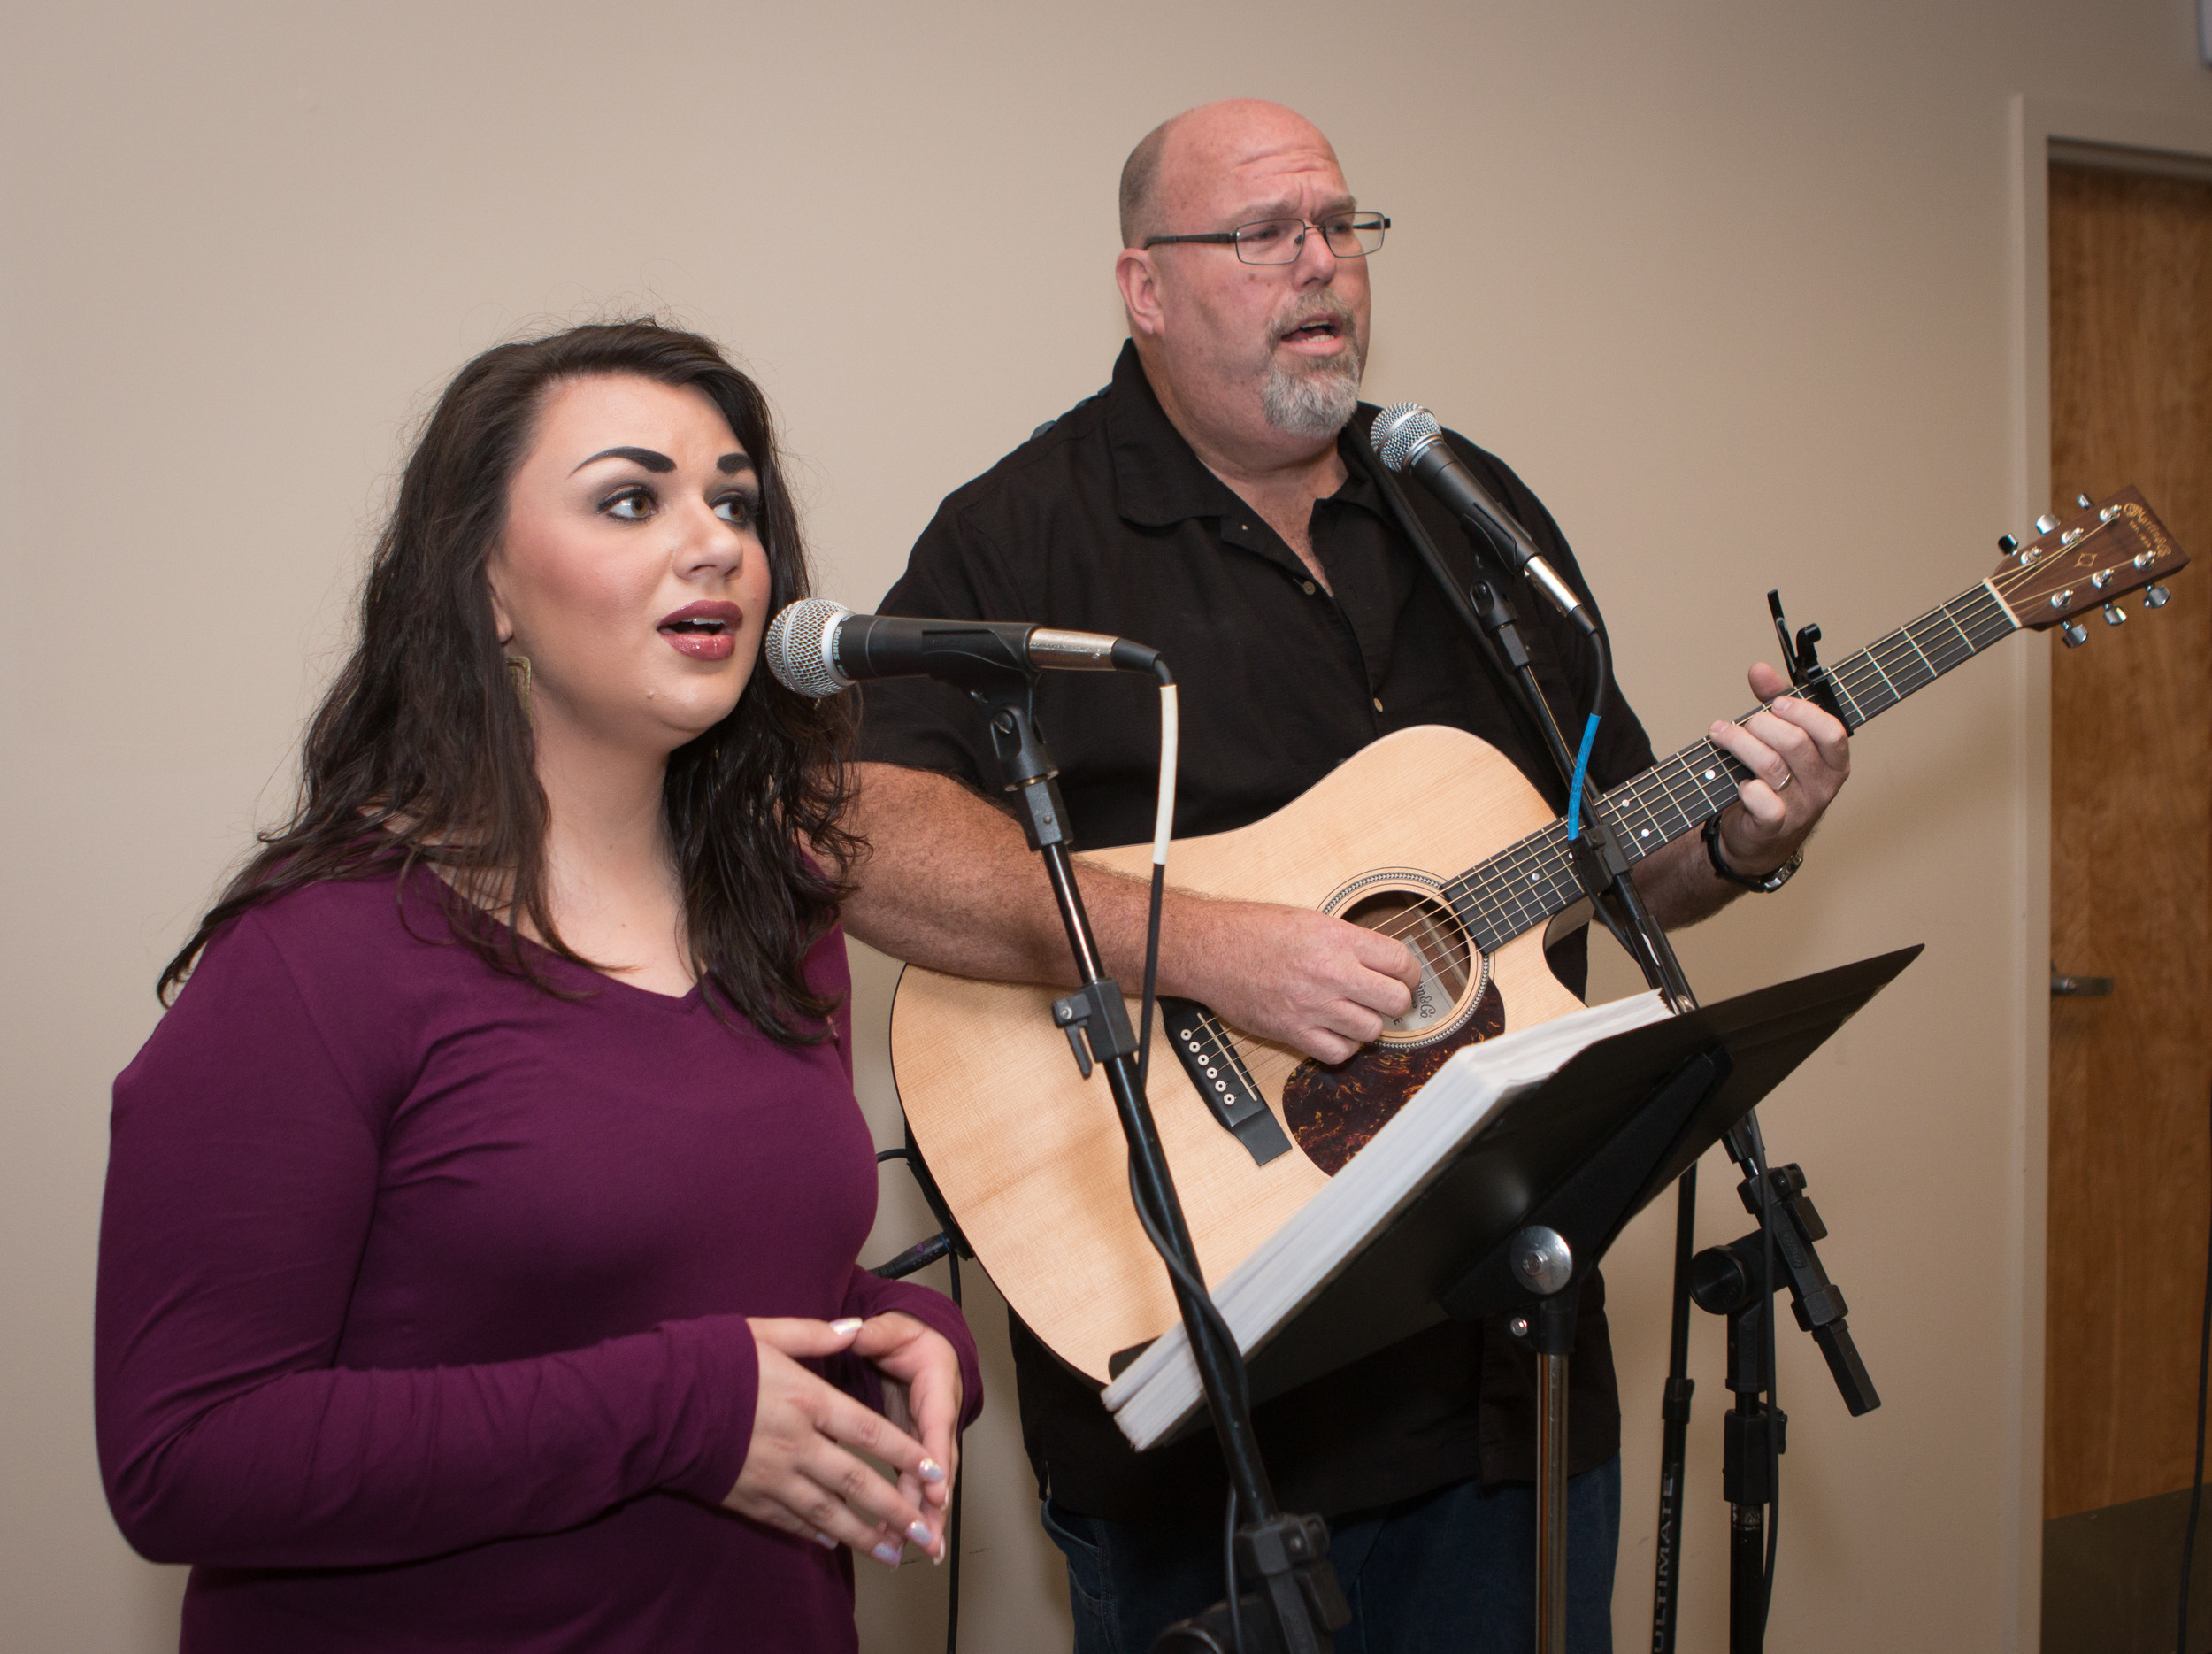 AshLee Holloman and Kevin Jarvis perform during the event.